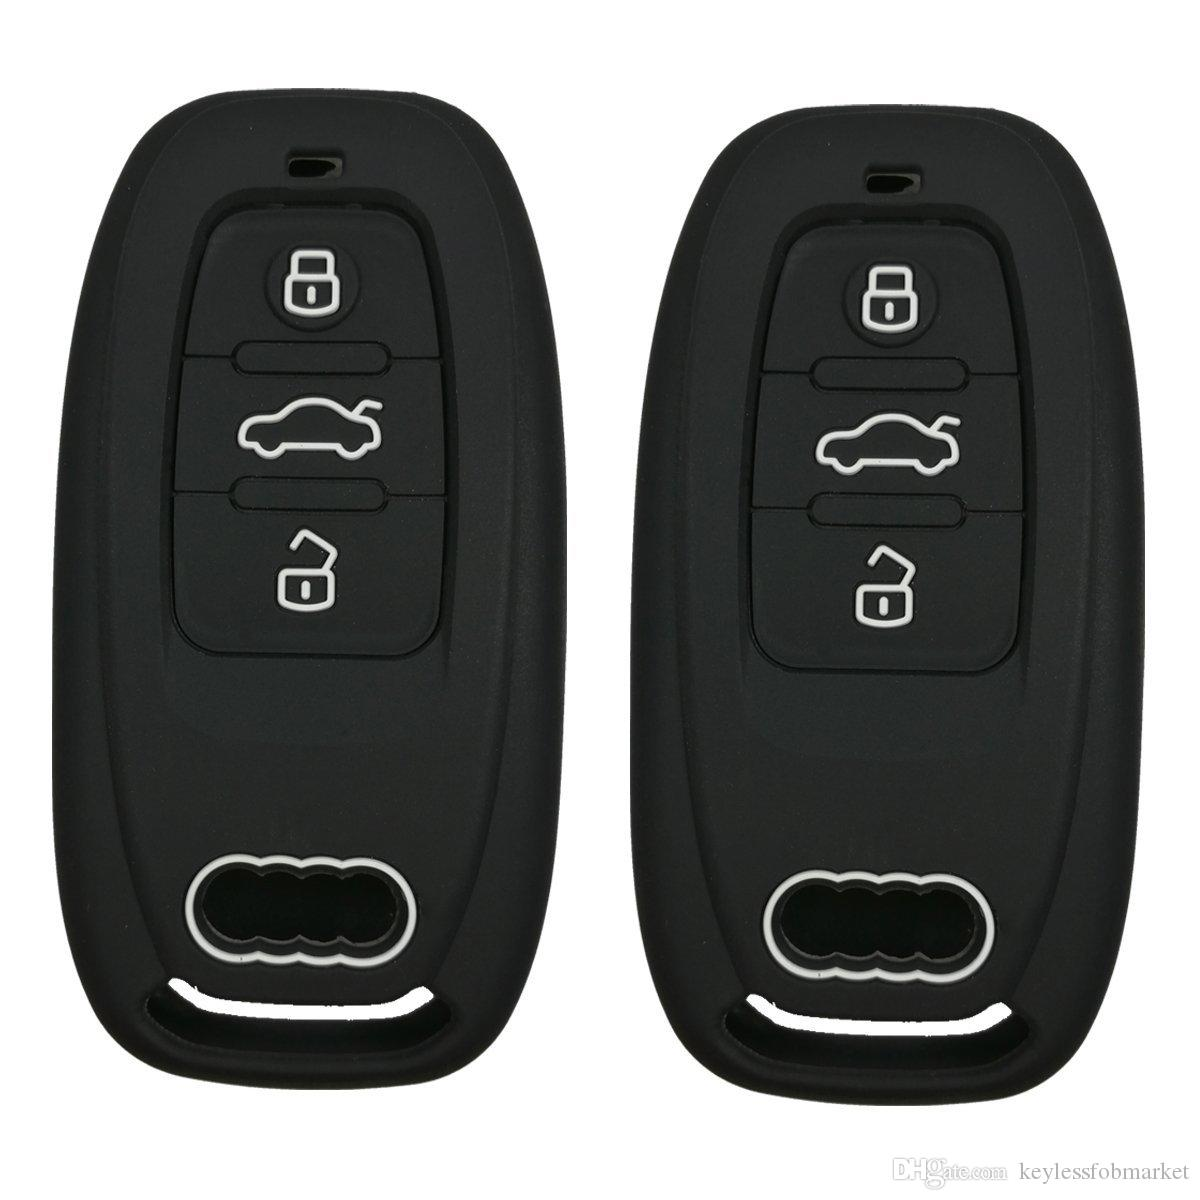 3 Buttons Car Key Fob Remote Cover Key Case Skin Holder Protector Shell Keyless For Audi A1 A3 A4 A5 A6 A7 A8 Q5 Q7 R8